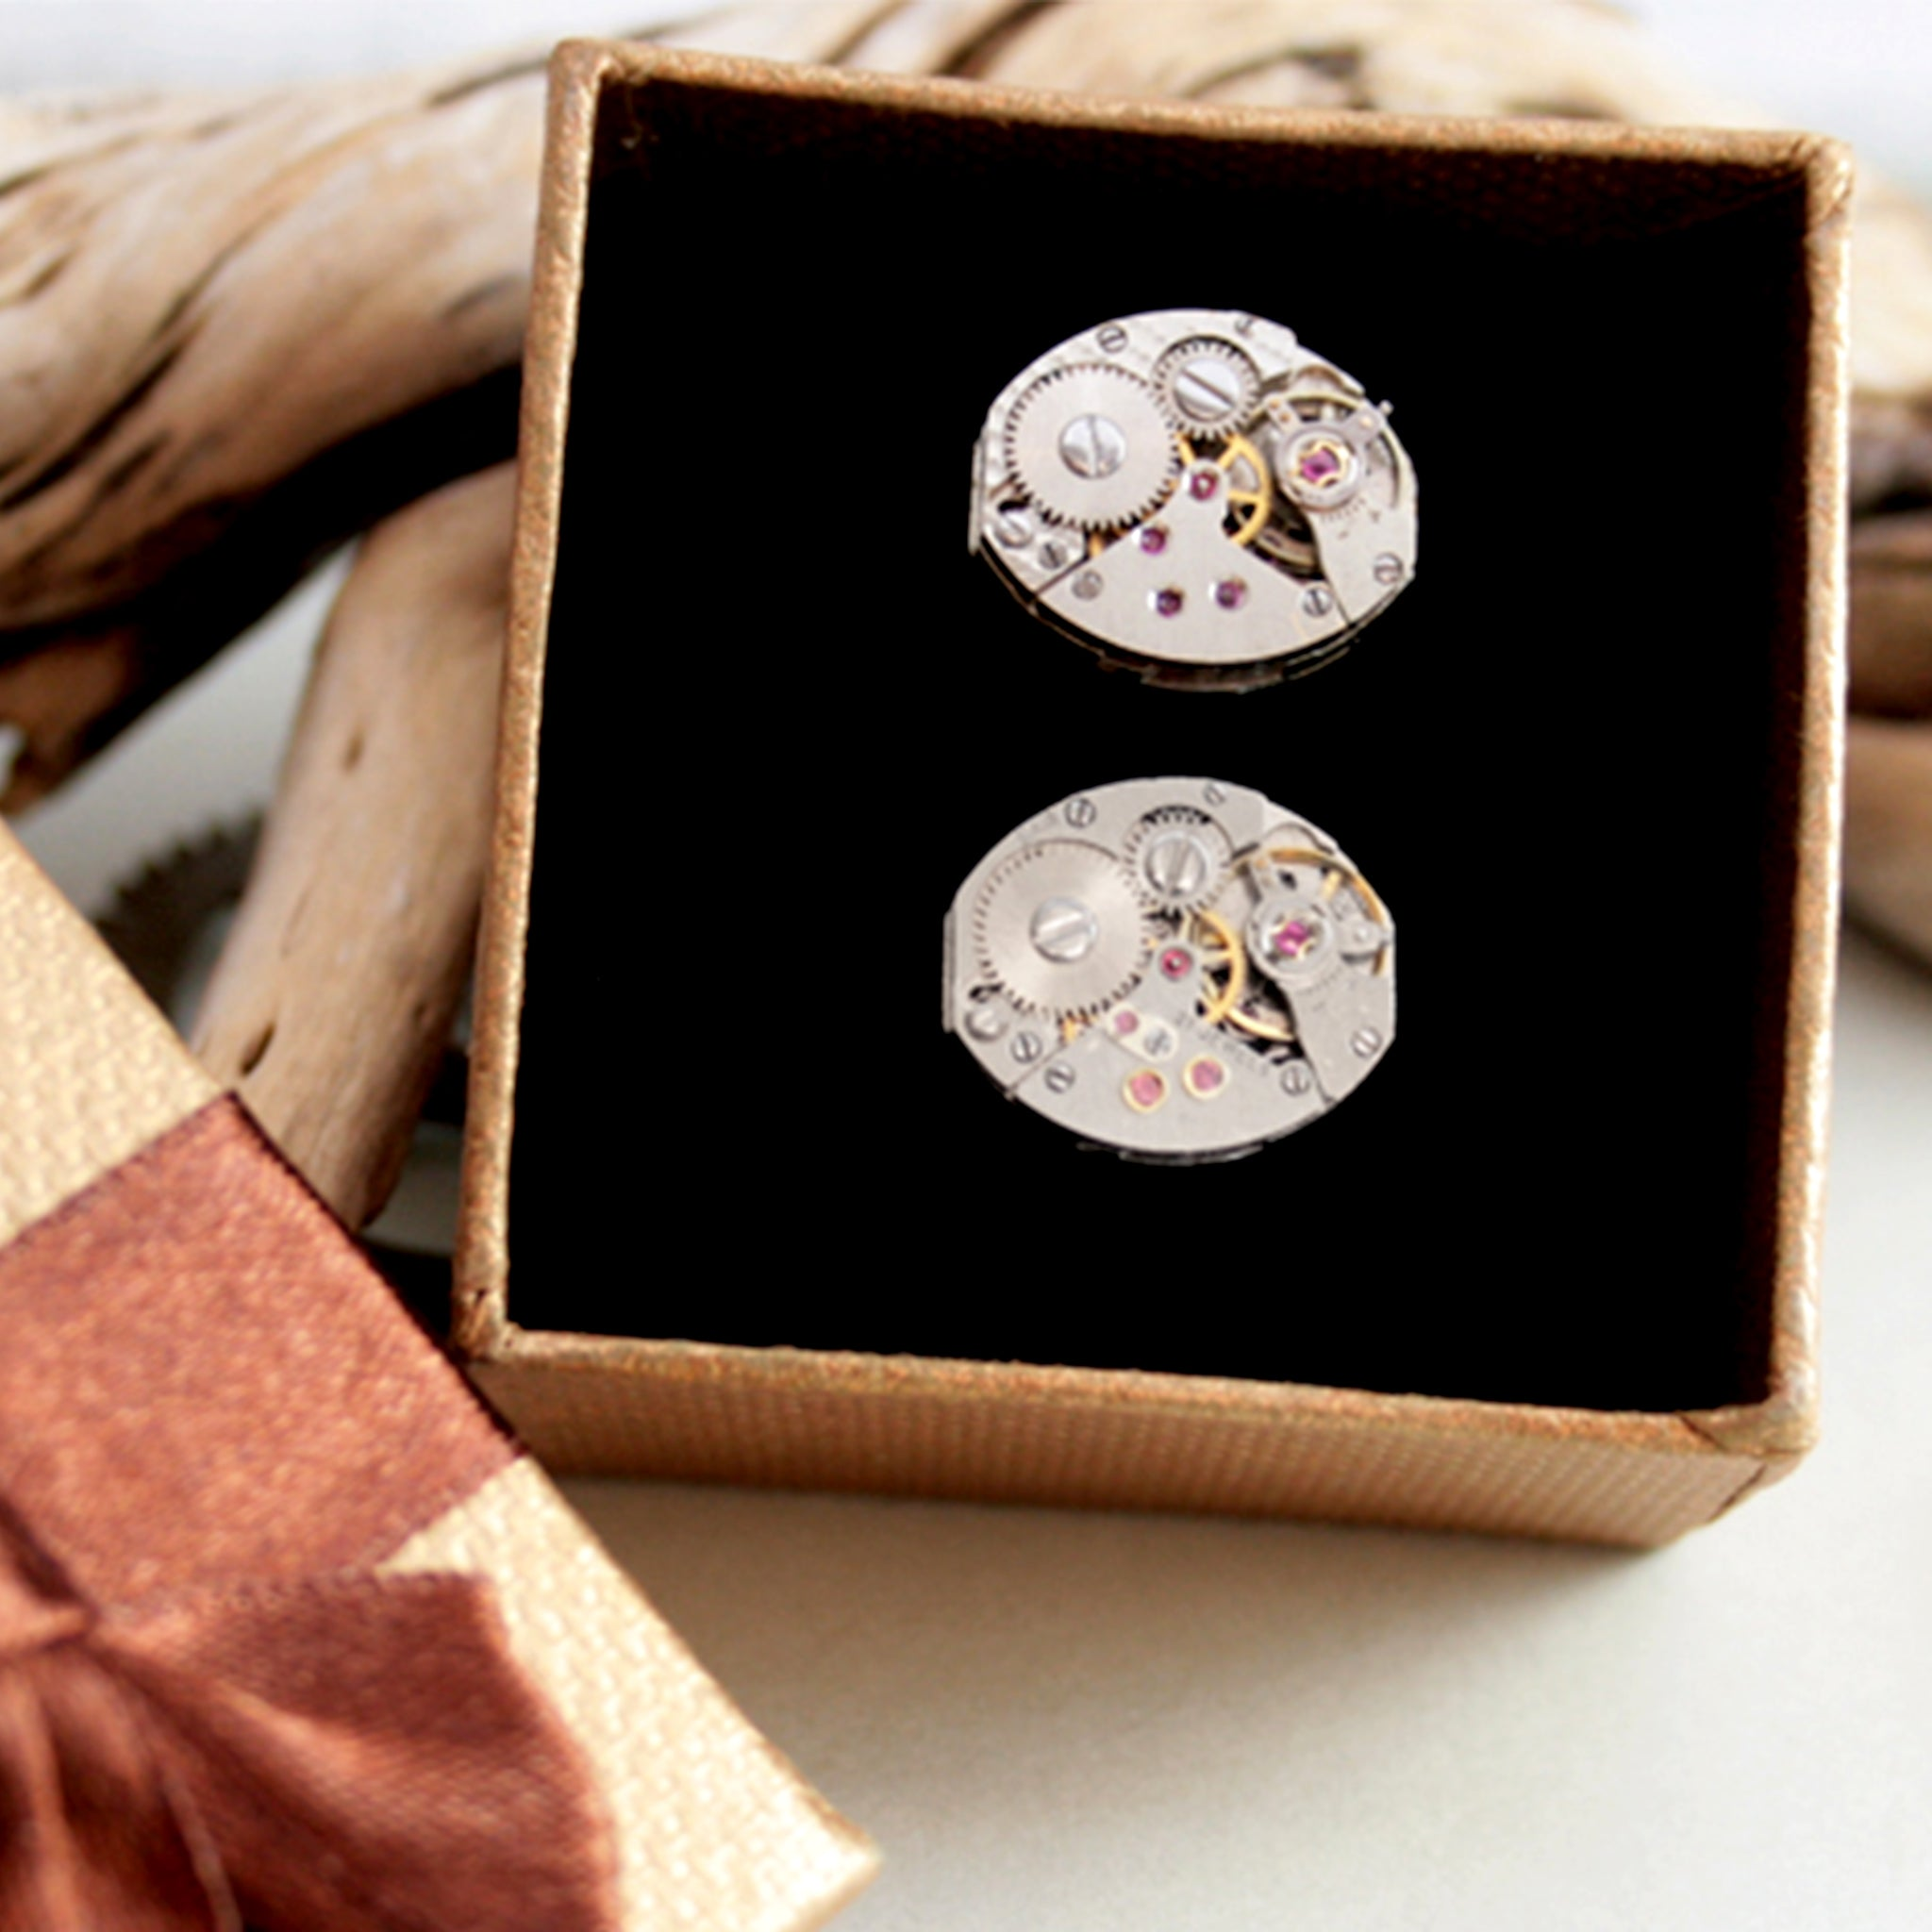 steampunk womens cufflinks featuring antique watch movements in a brown box